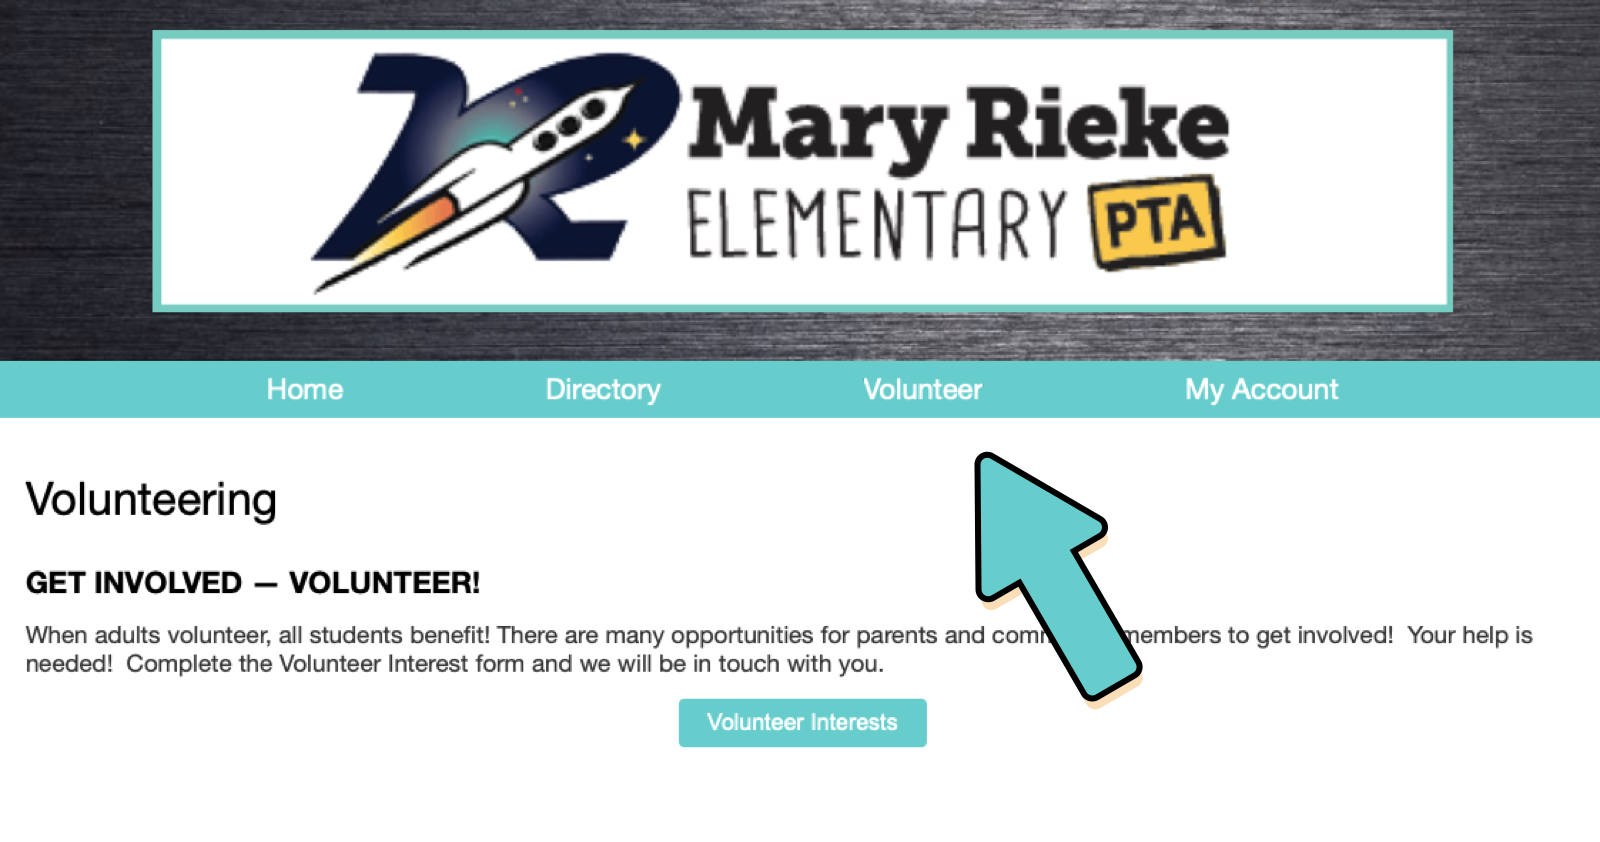 Visit our New Volunteer Database! - Find out where Rieke's volunteer needs are in details. Click here.